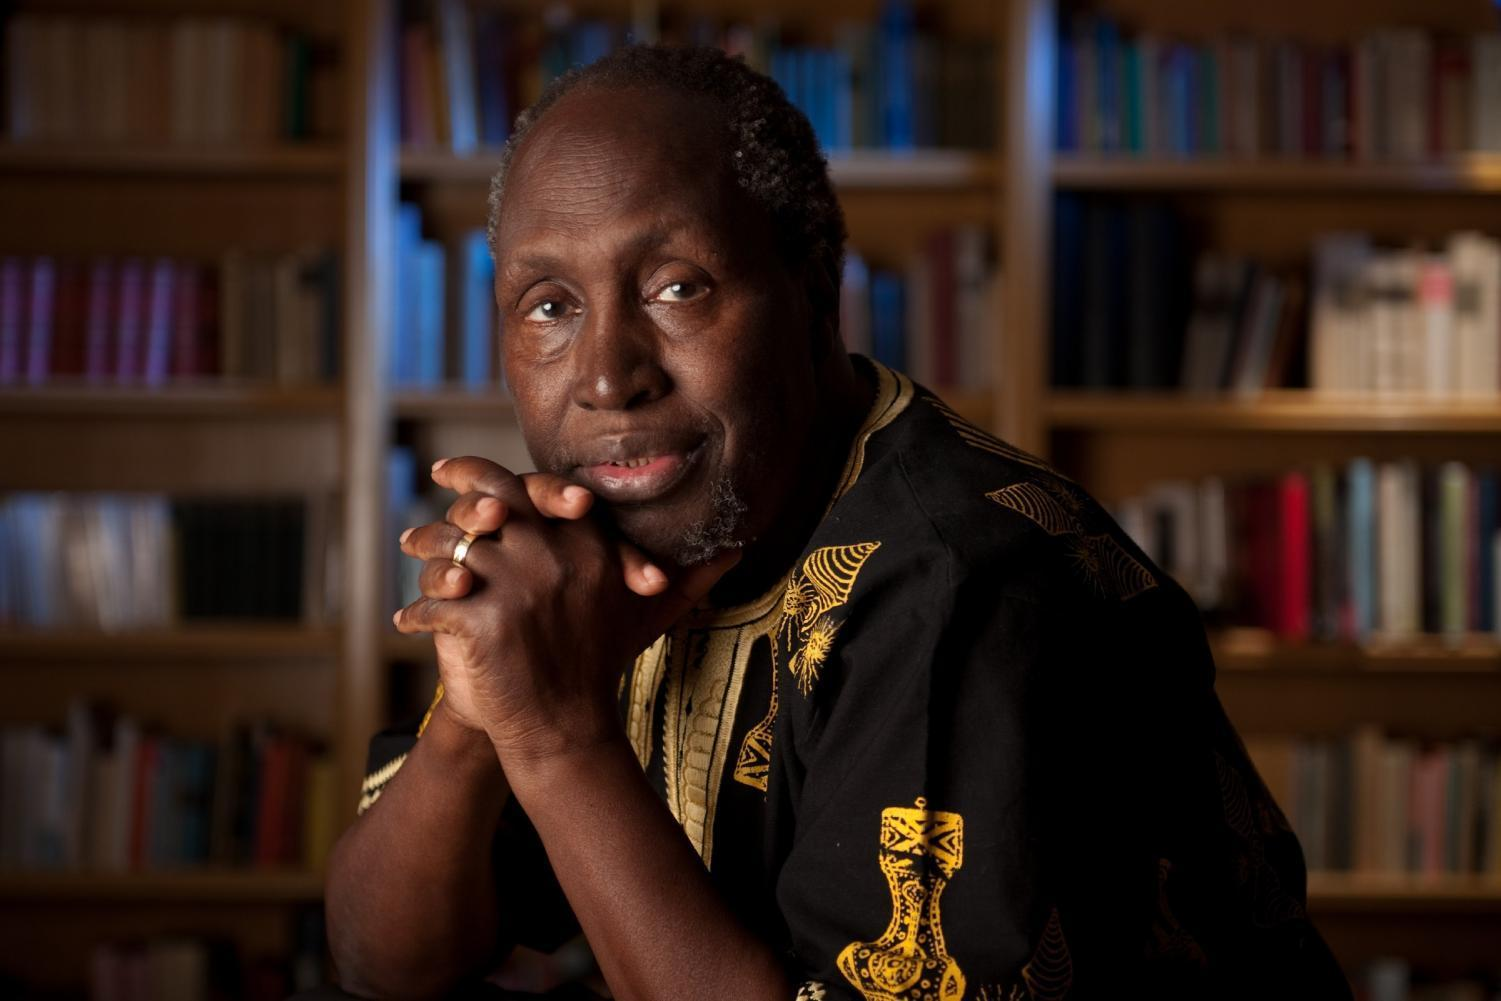 Ngũgĩ wa Thiong'o's new book explores the oftentimes dangerous symbiosis between language and culture.